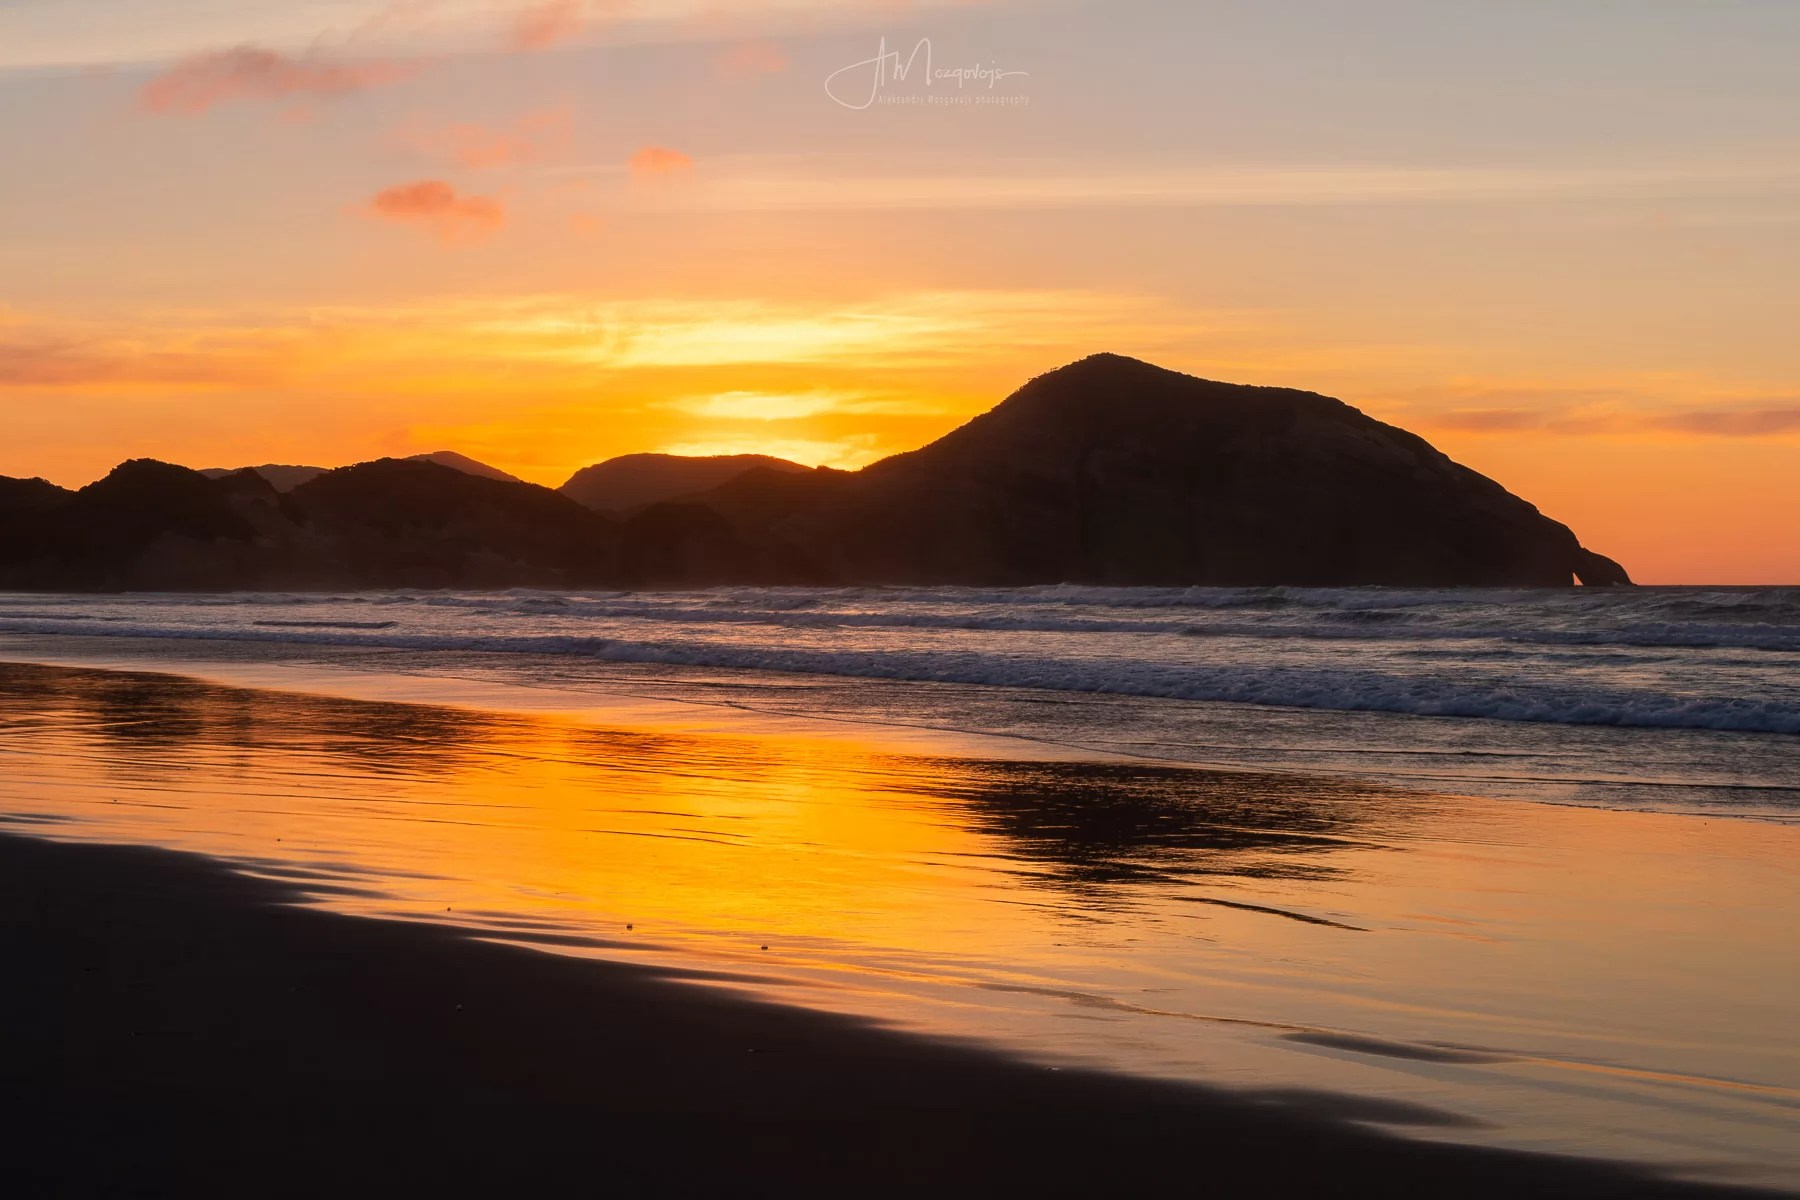 Sunset over Wharariki Beach, New Zealand